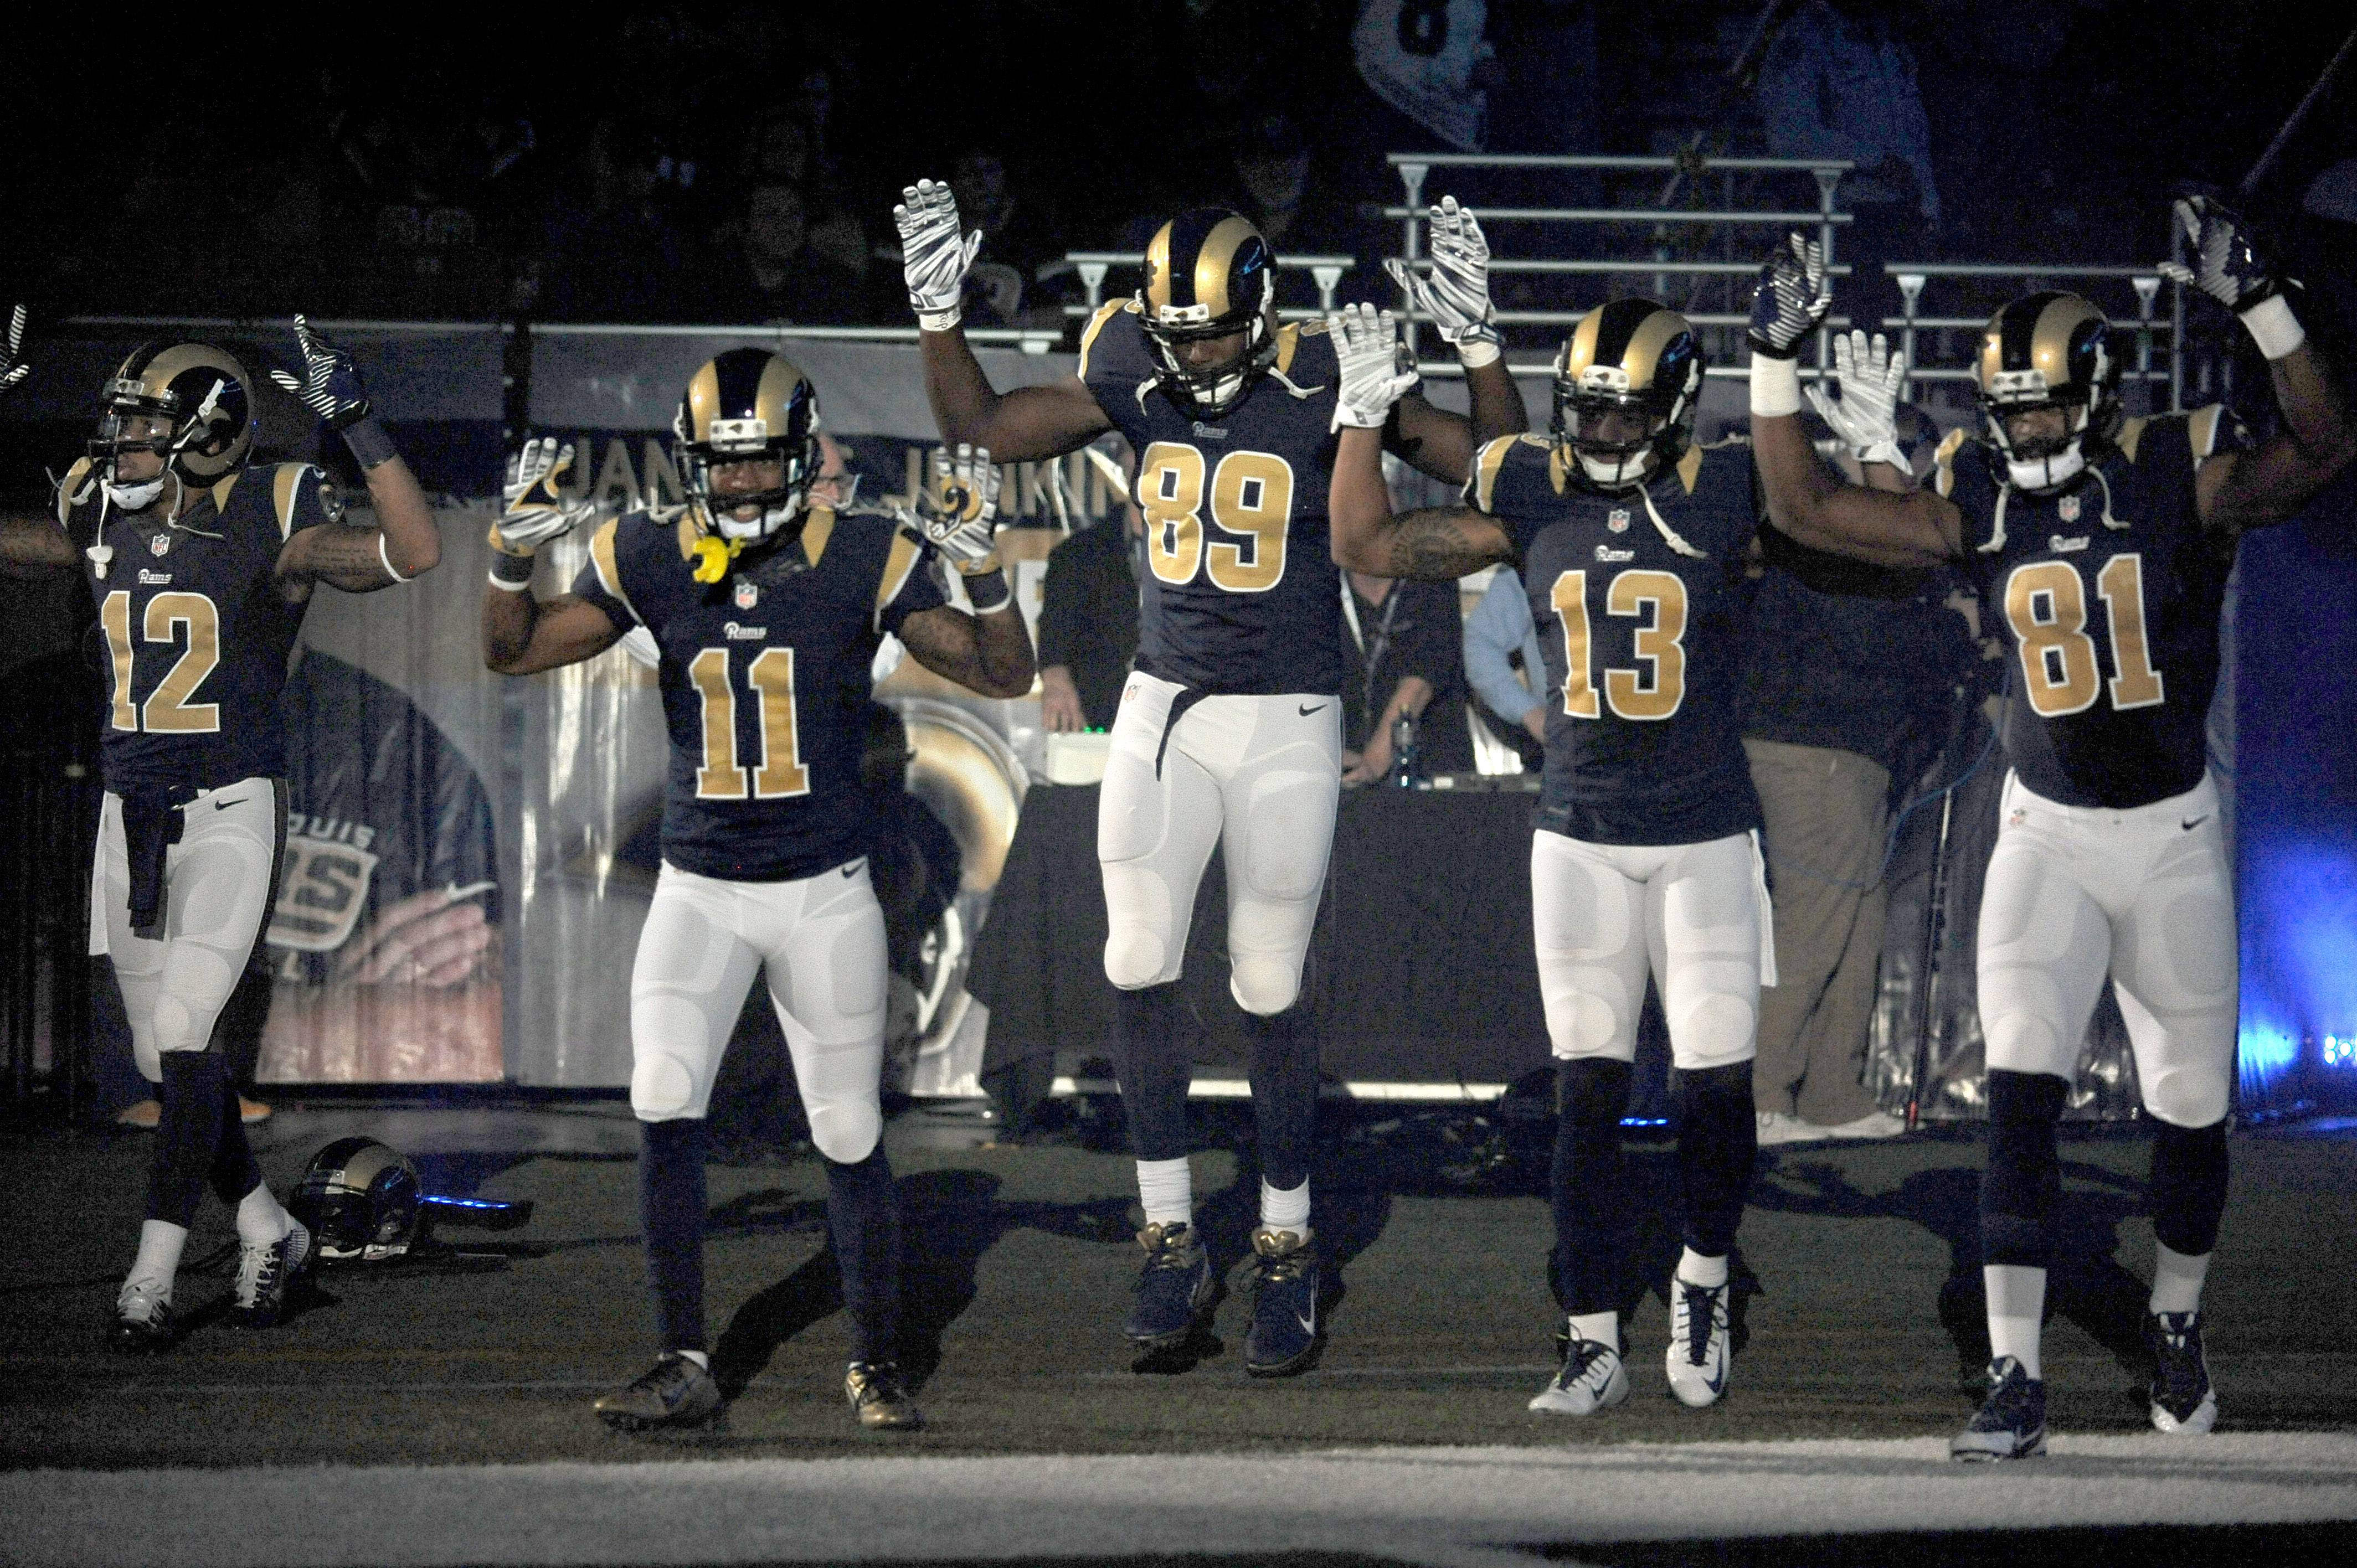 A St. Louis Rams official and a county police chief differed Monday about whether the team had apologized for the actions of five players who raised their hands during pregame festivities Sunday in a show of solidarity with Ferguson protesters.